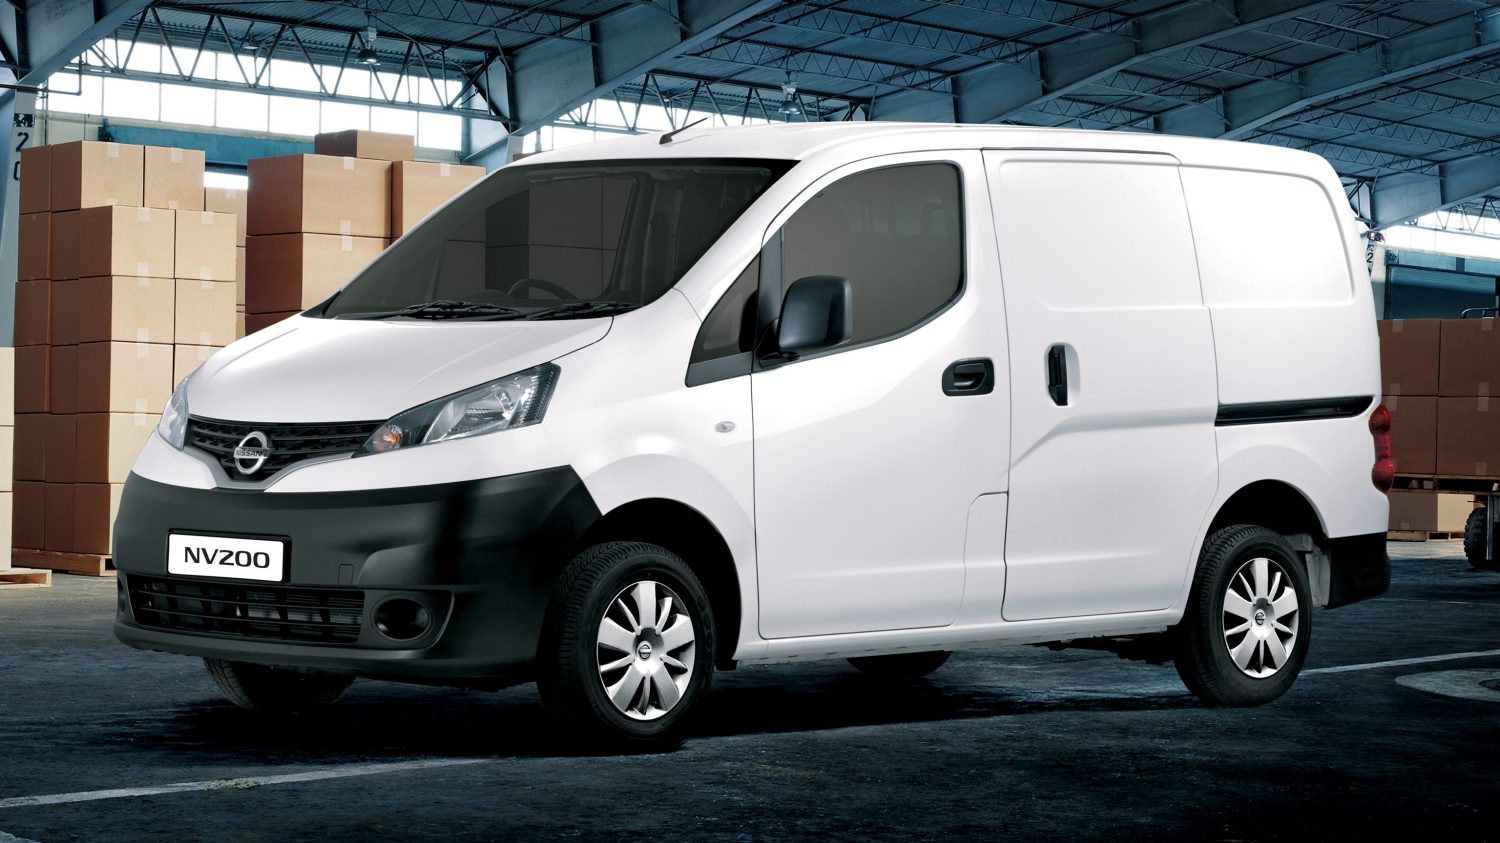 nv200 van nissan south africa. Black Bedroom Furniture Sets. Home Design Ideas